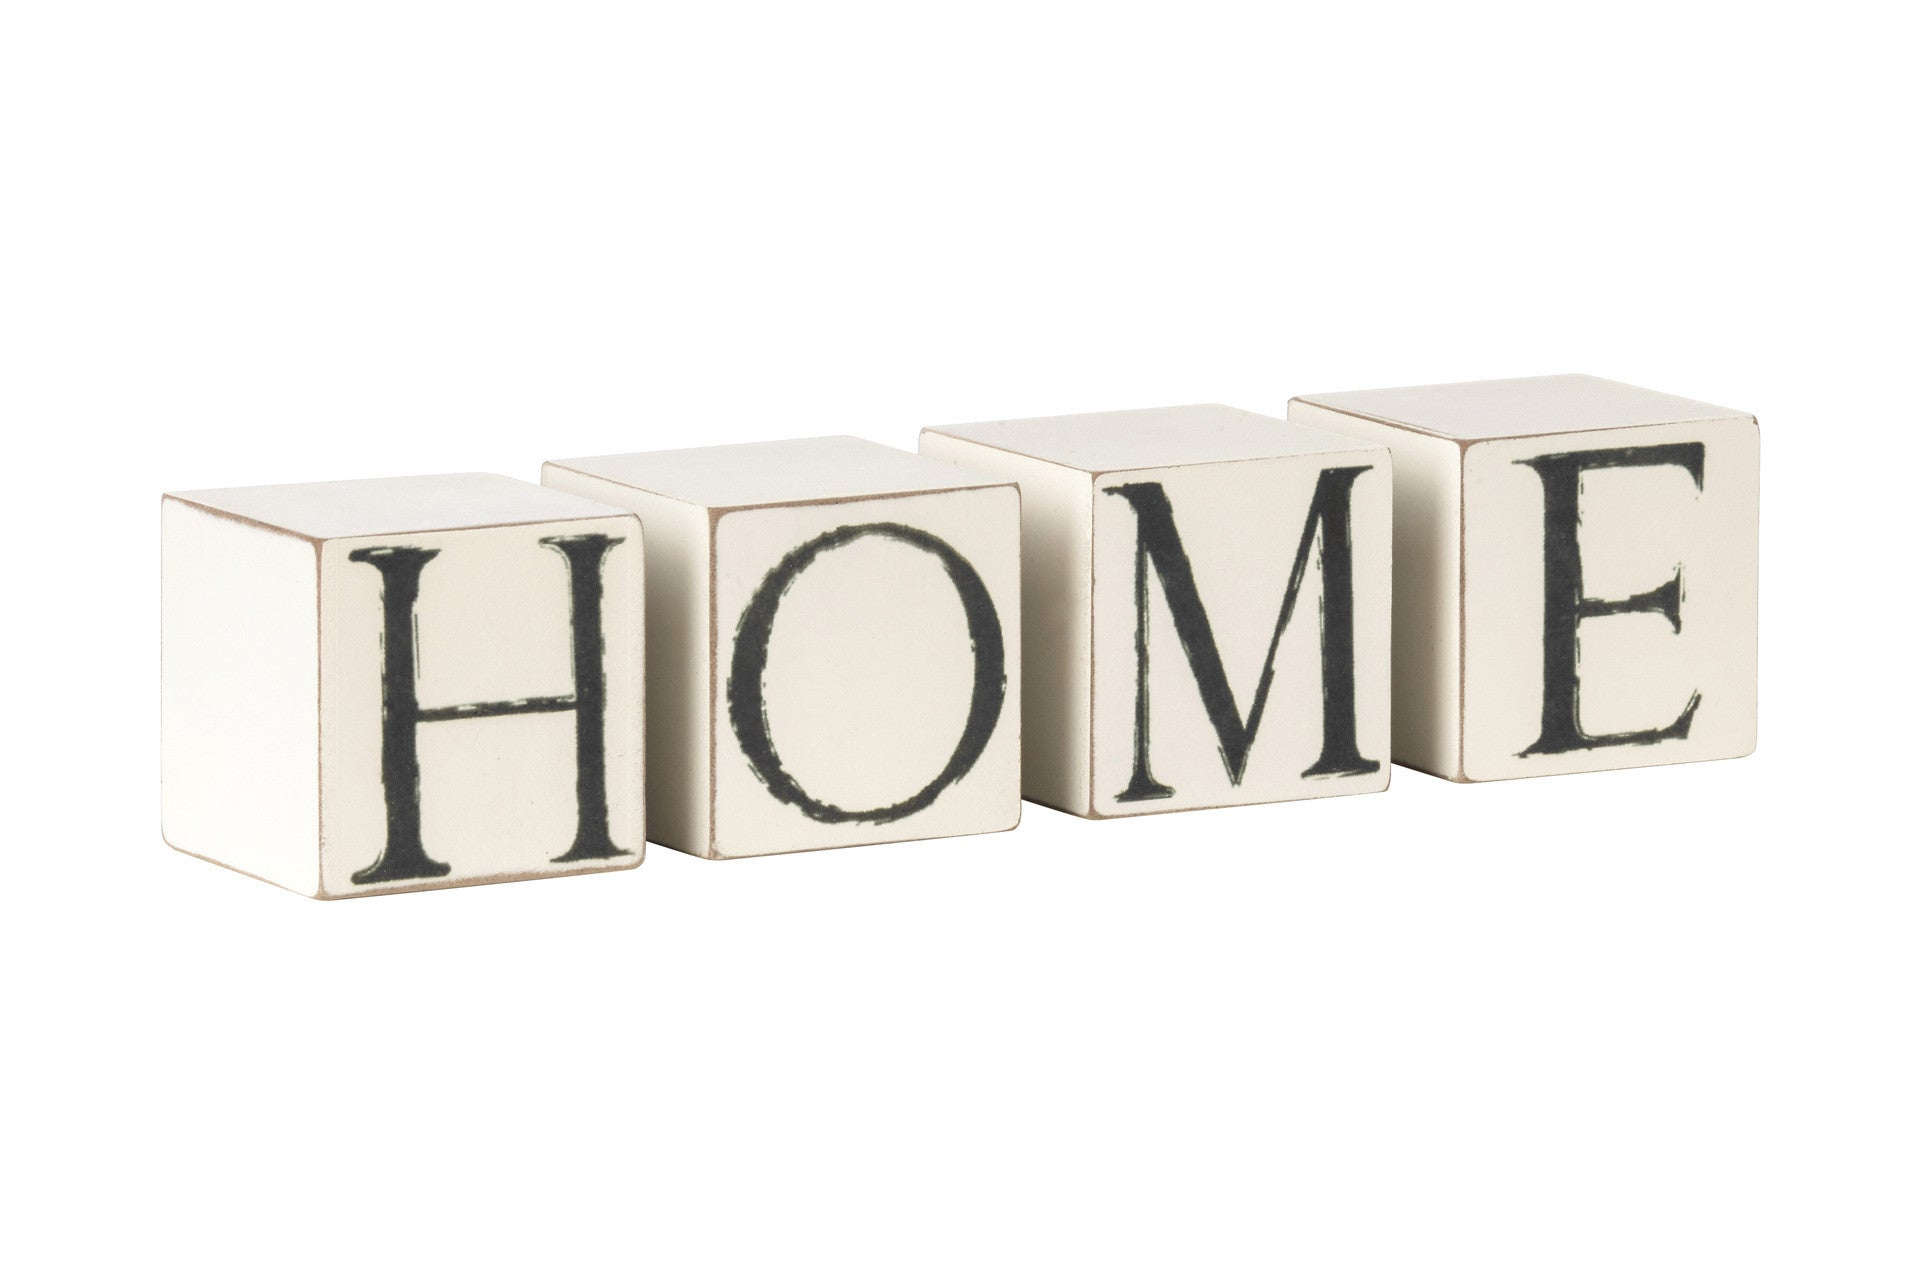 Premier Home Block Ornament-1410841 - Homely Nigeria